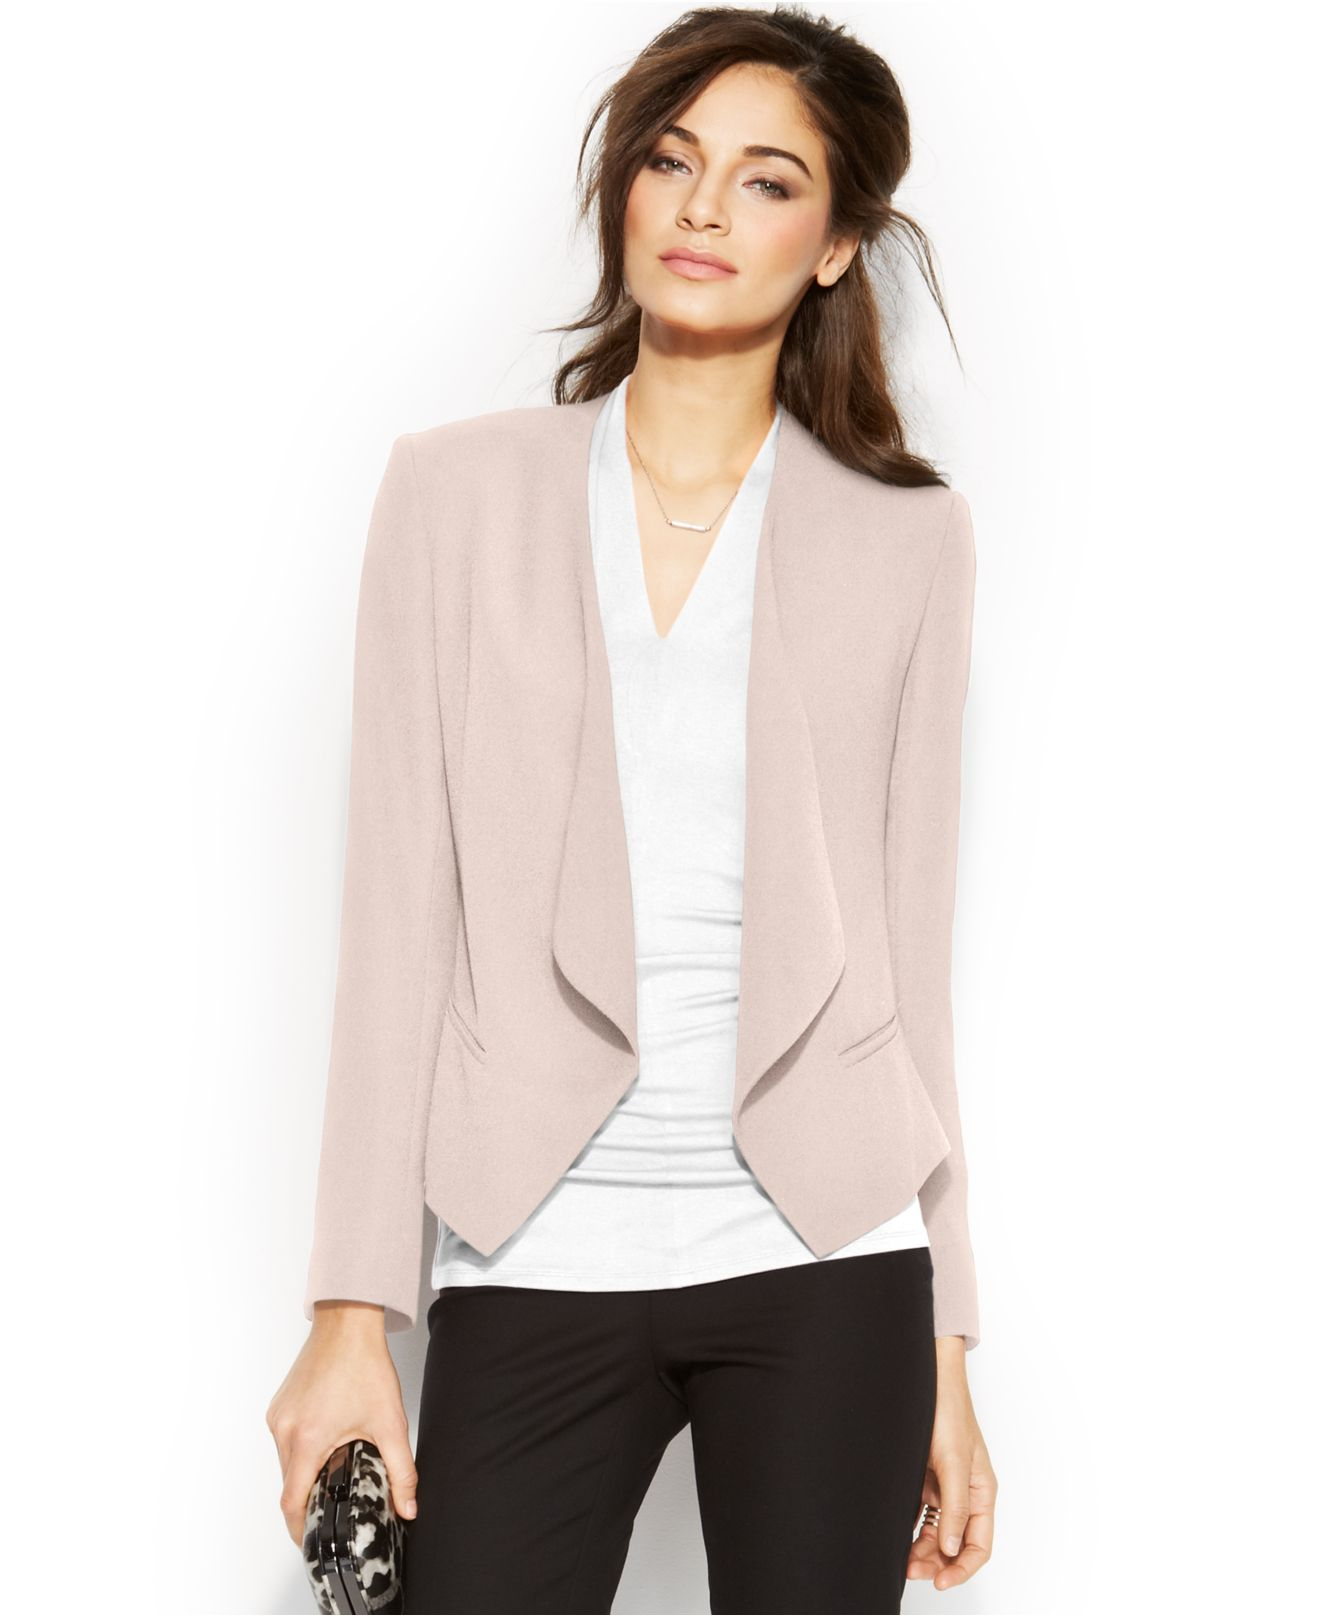 83cdca554dd0 Lyst - Vince Camuto Draped Front Blazer in Pink